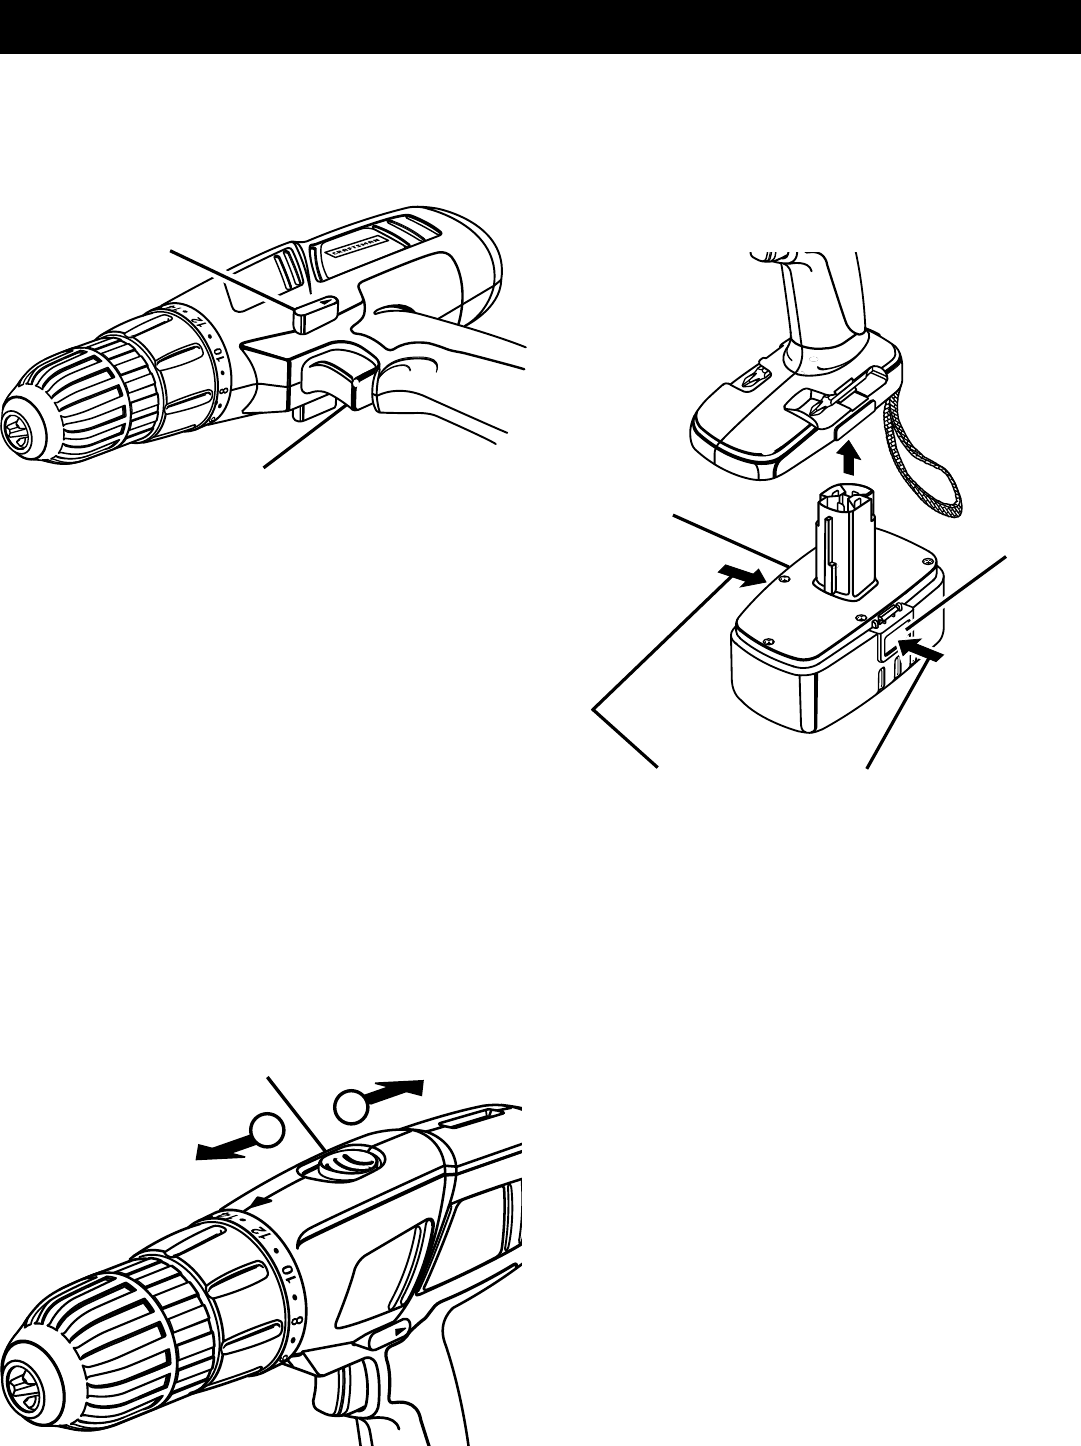 Page 12 of Sears Cordless Drill 315.11485 User Guide